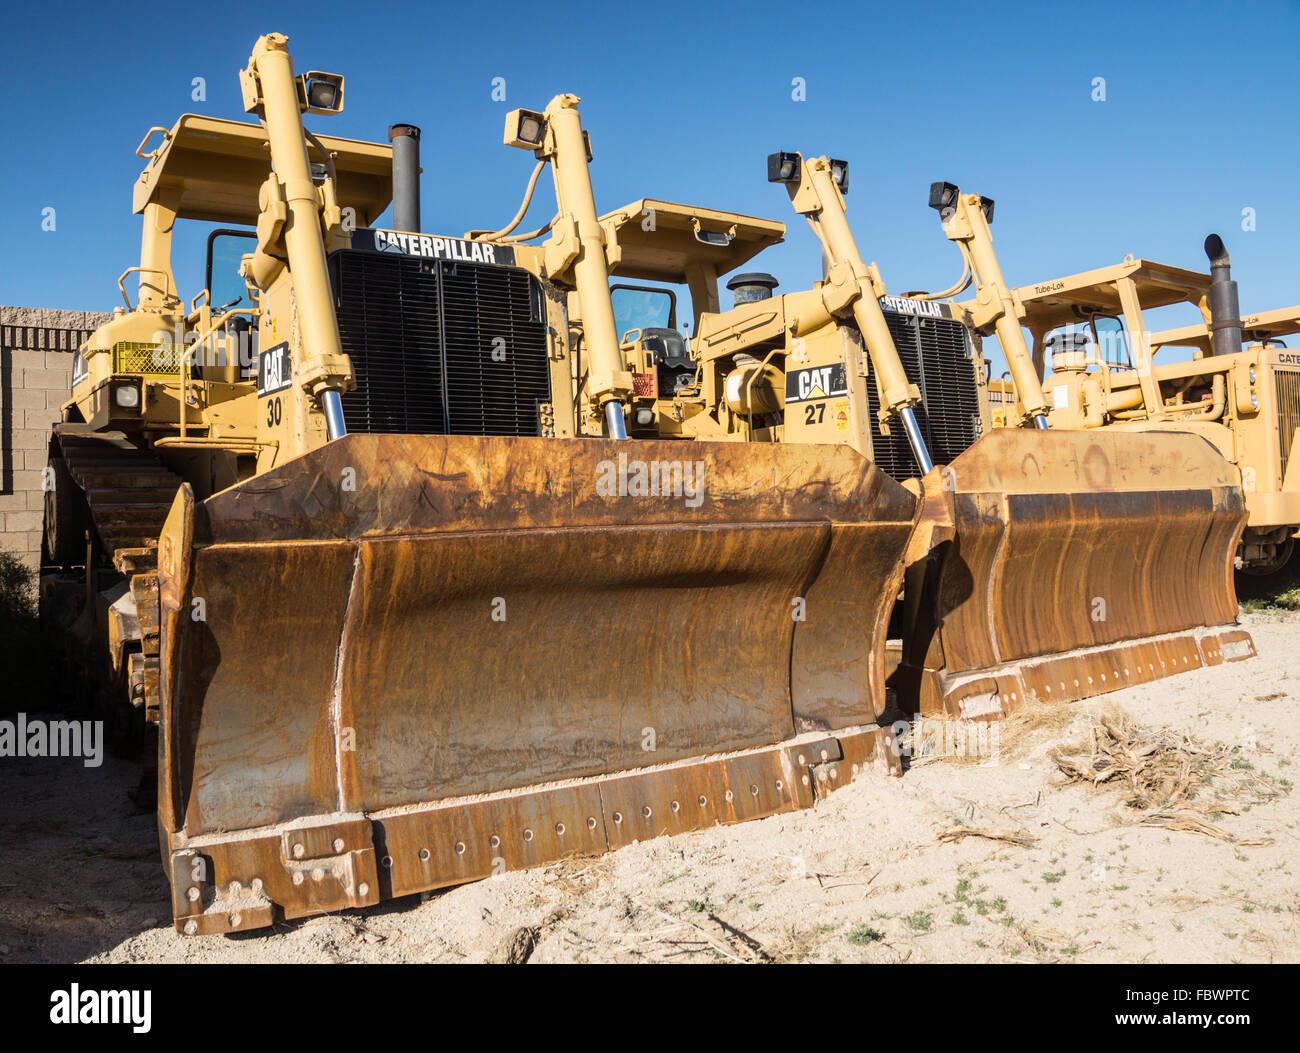 Earth Movers - Stock Image